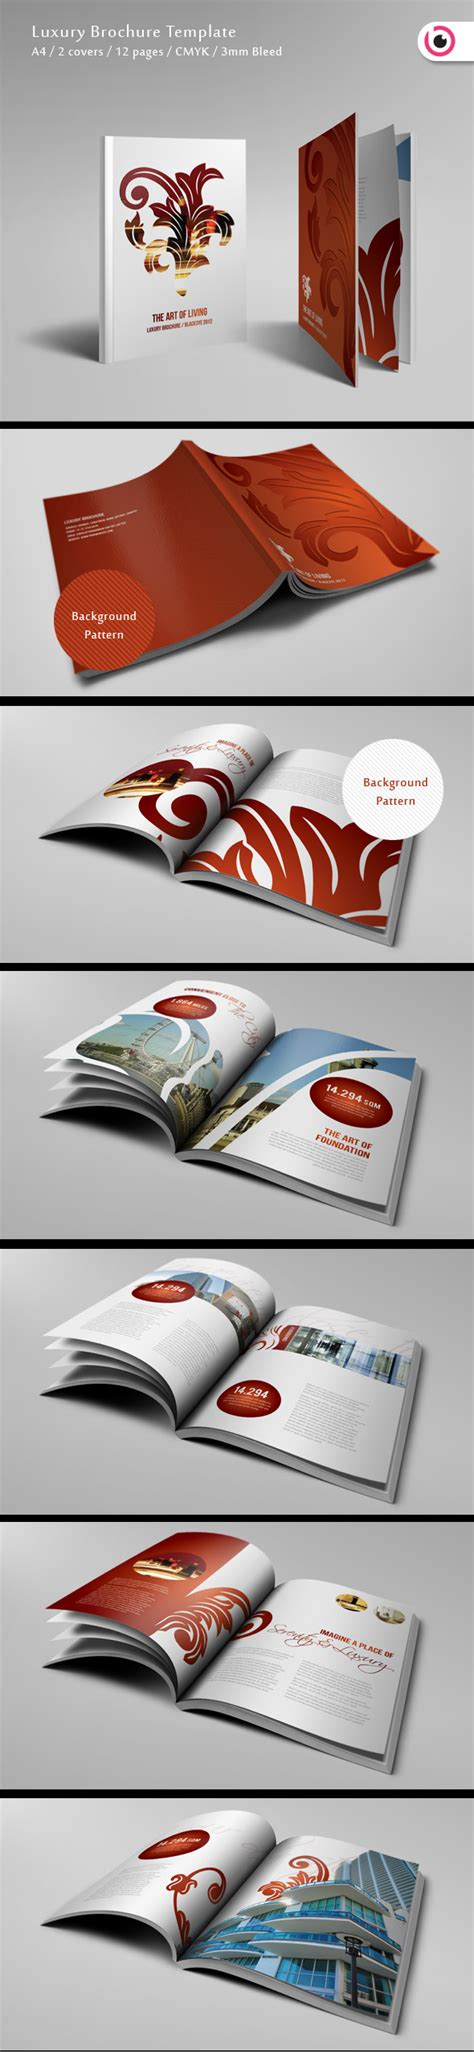 30 brochure design inspirations web3mantra